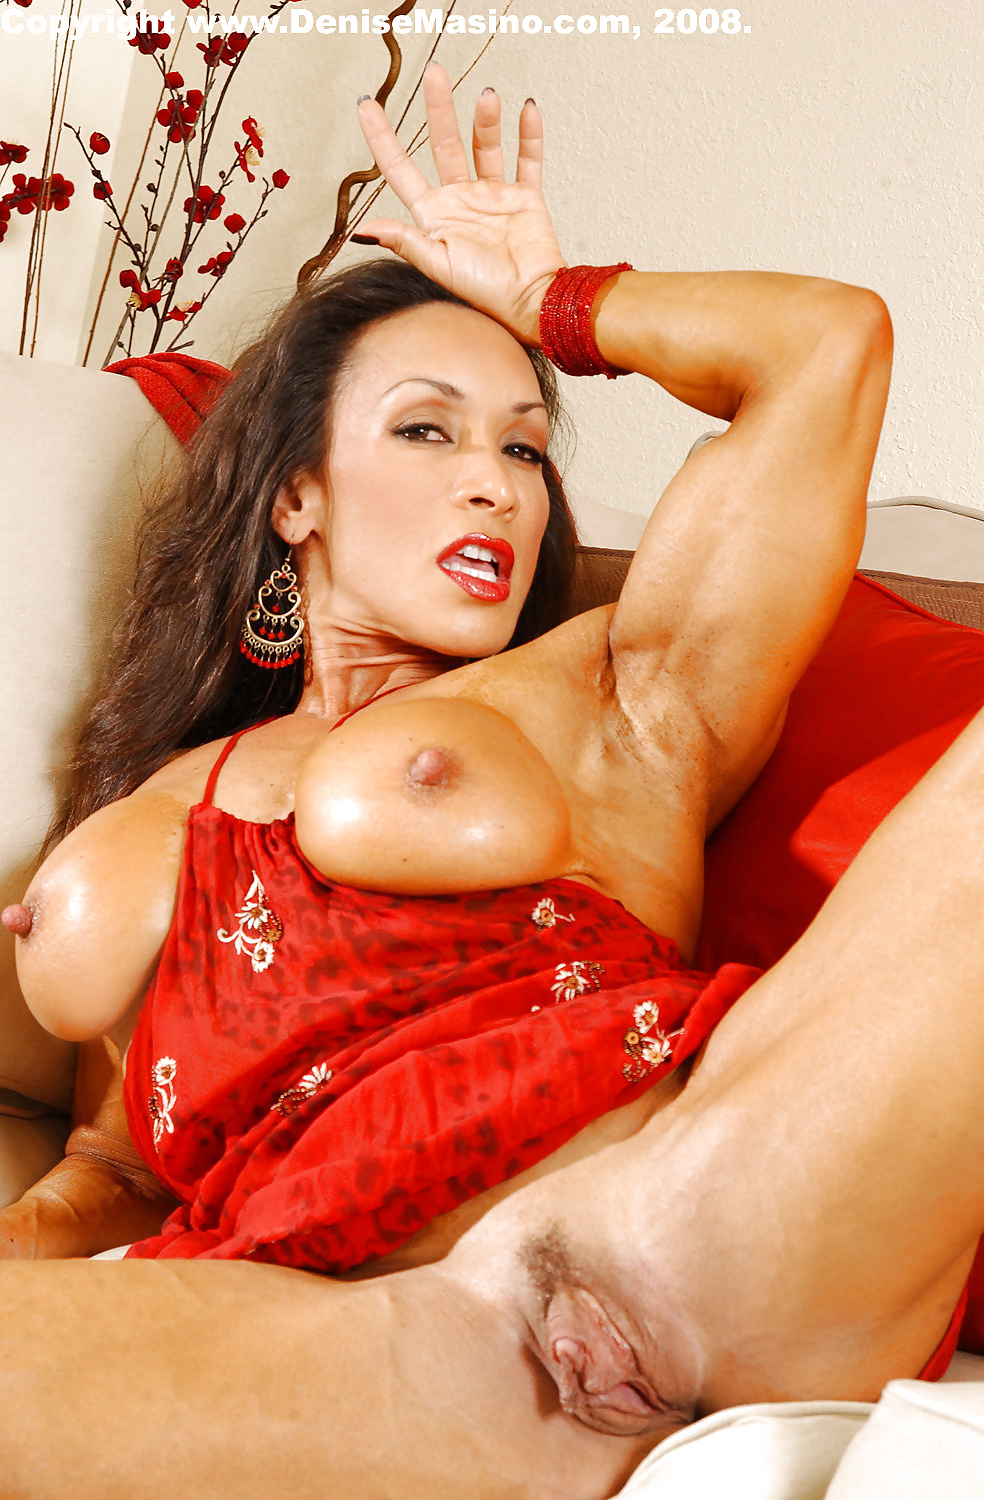 Female Bodybuilder, Denise Masino Likes To Play With Her Gigantic Clit, In Front Of The Camera